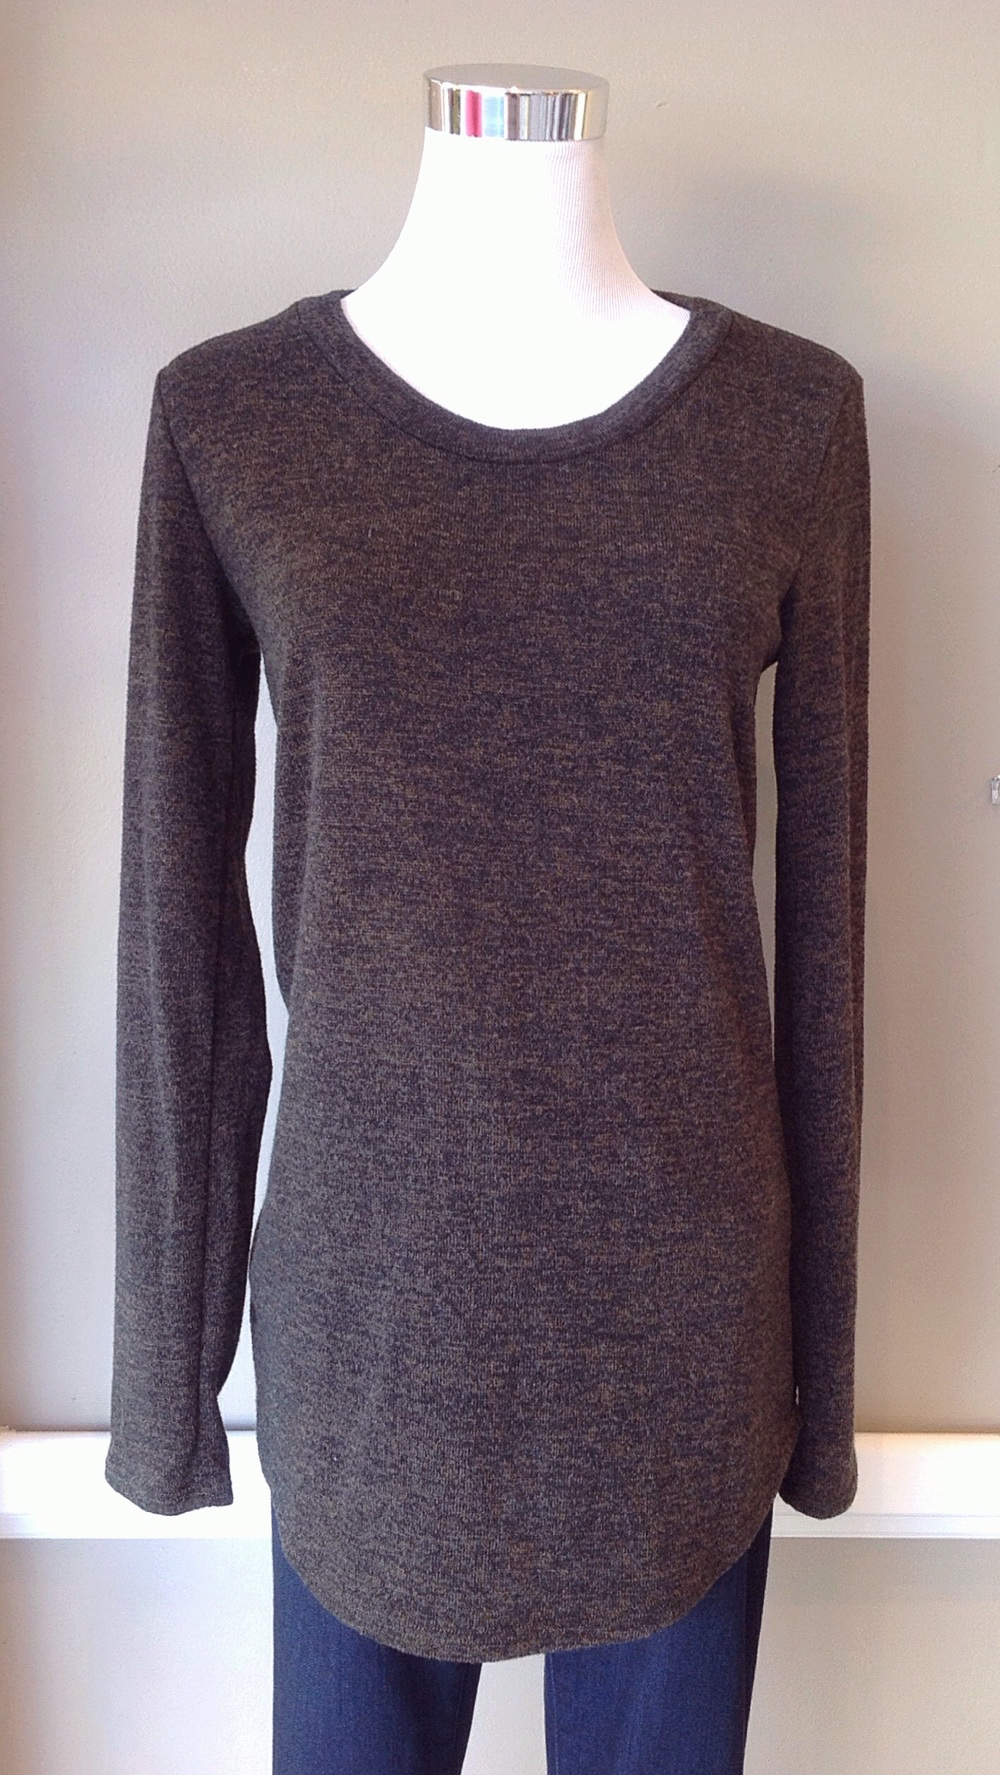 Olive double knit top with rounded hem, $32